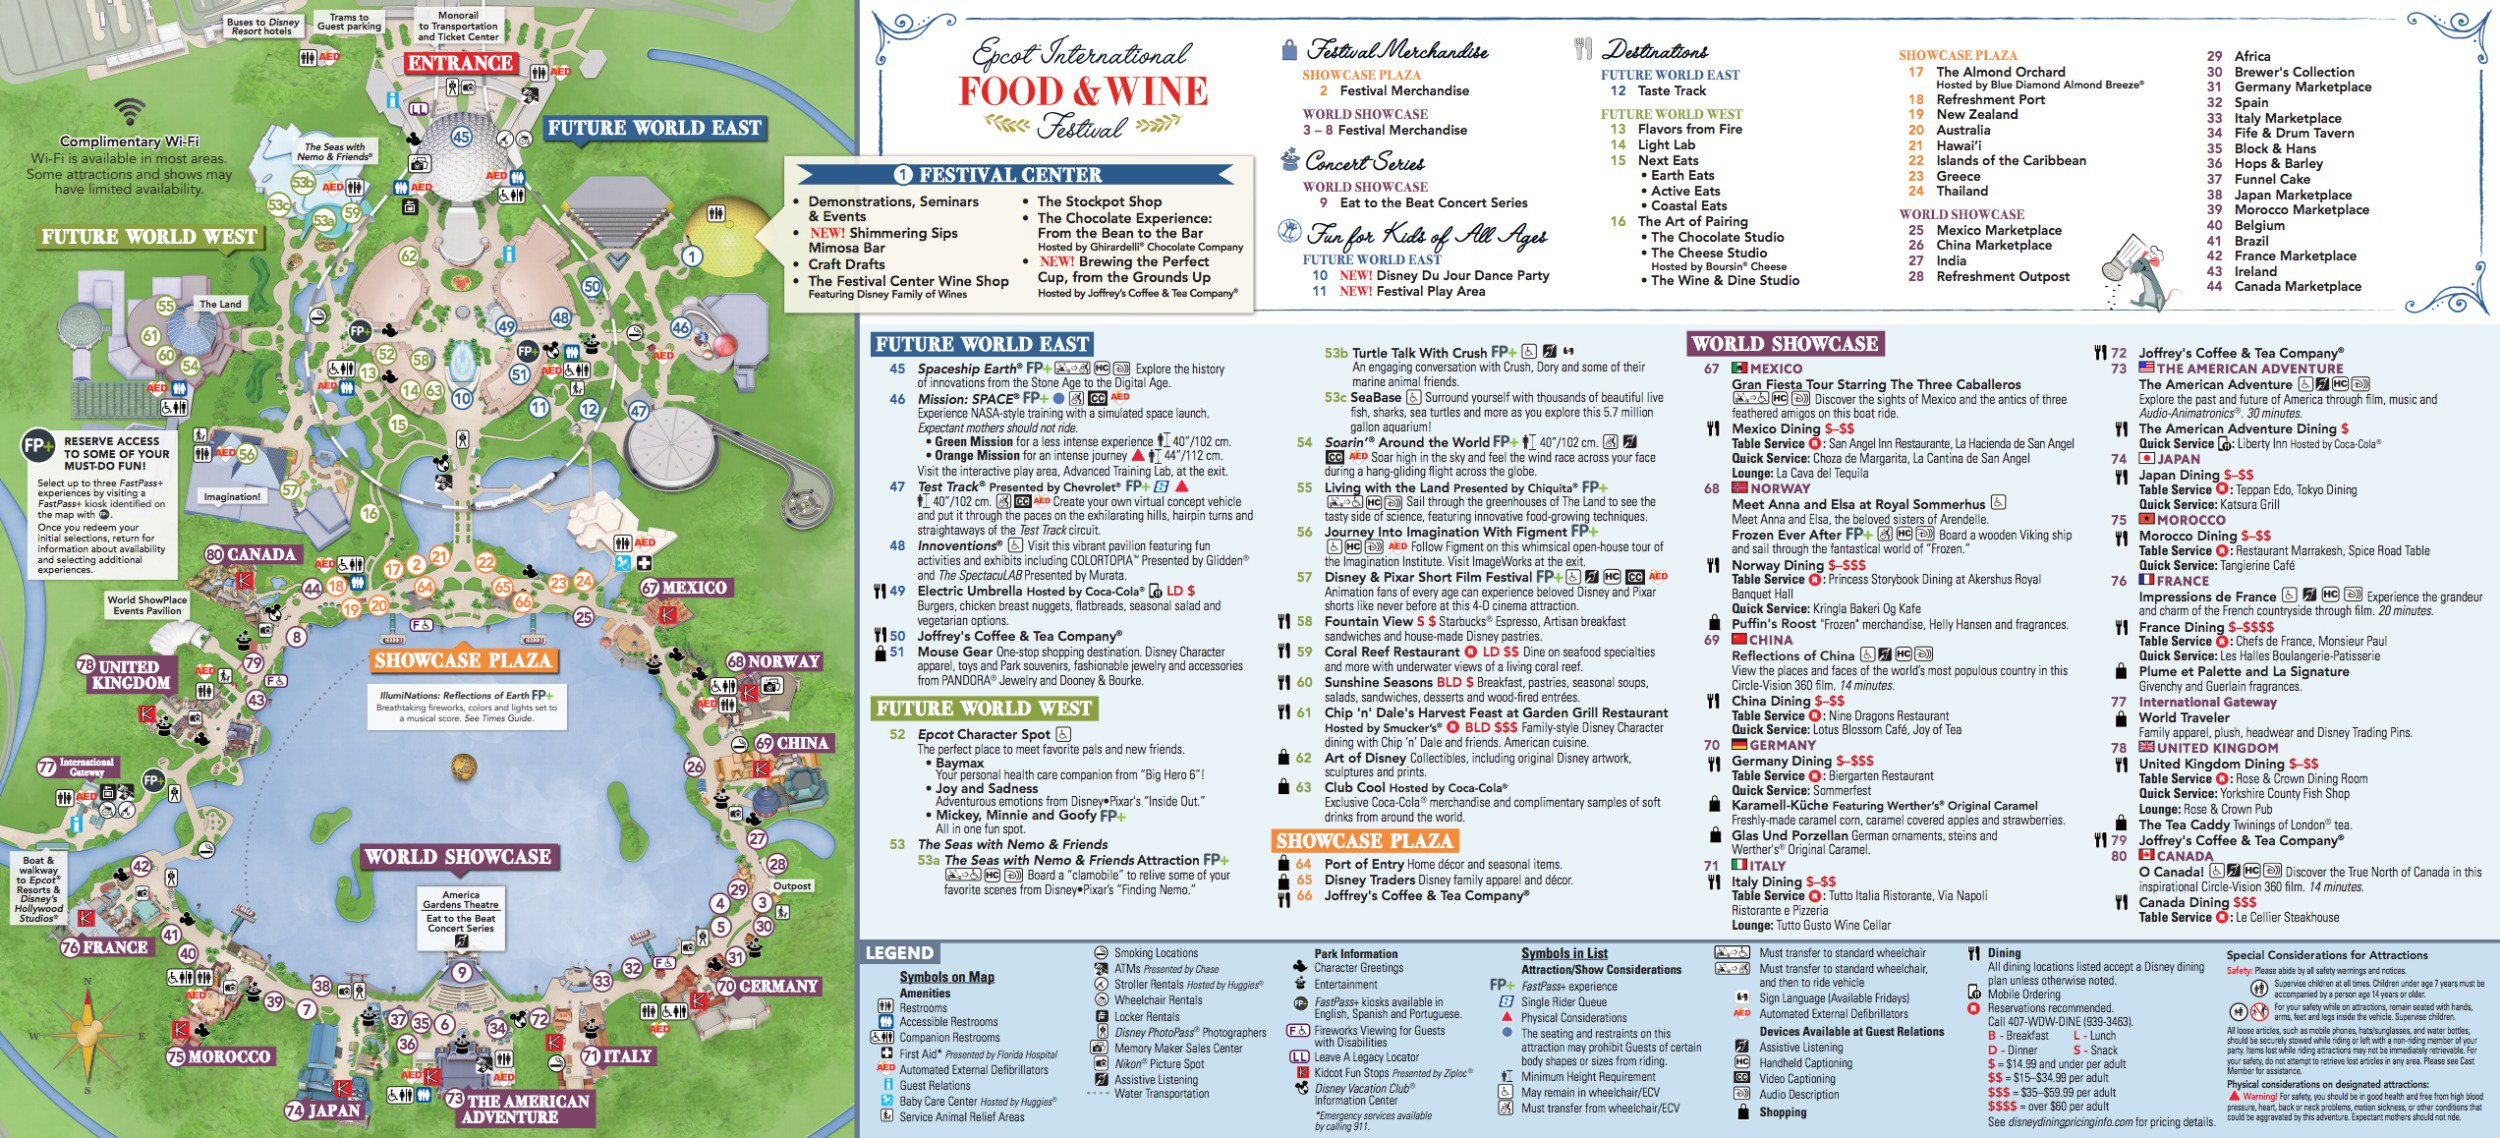 Epcot Food And Wine Festival Map 2018 - Epcot Florida Map